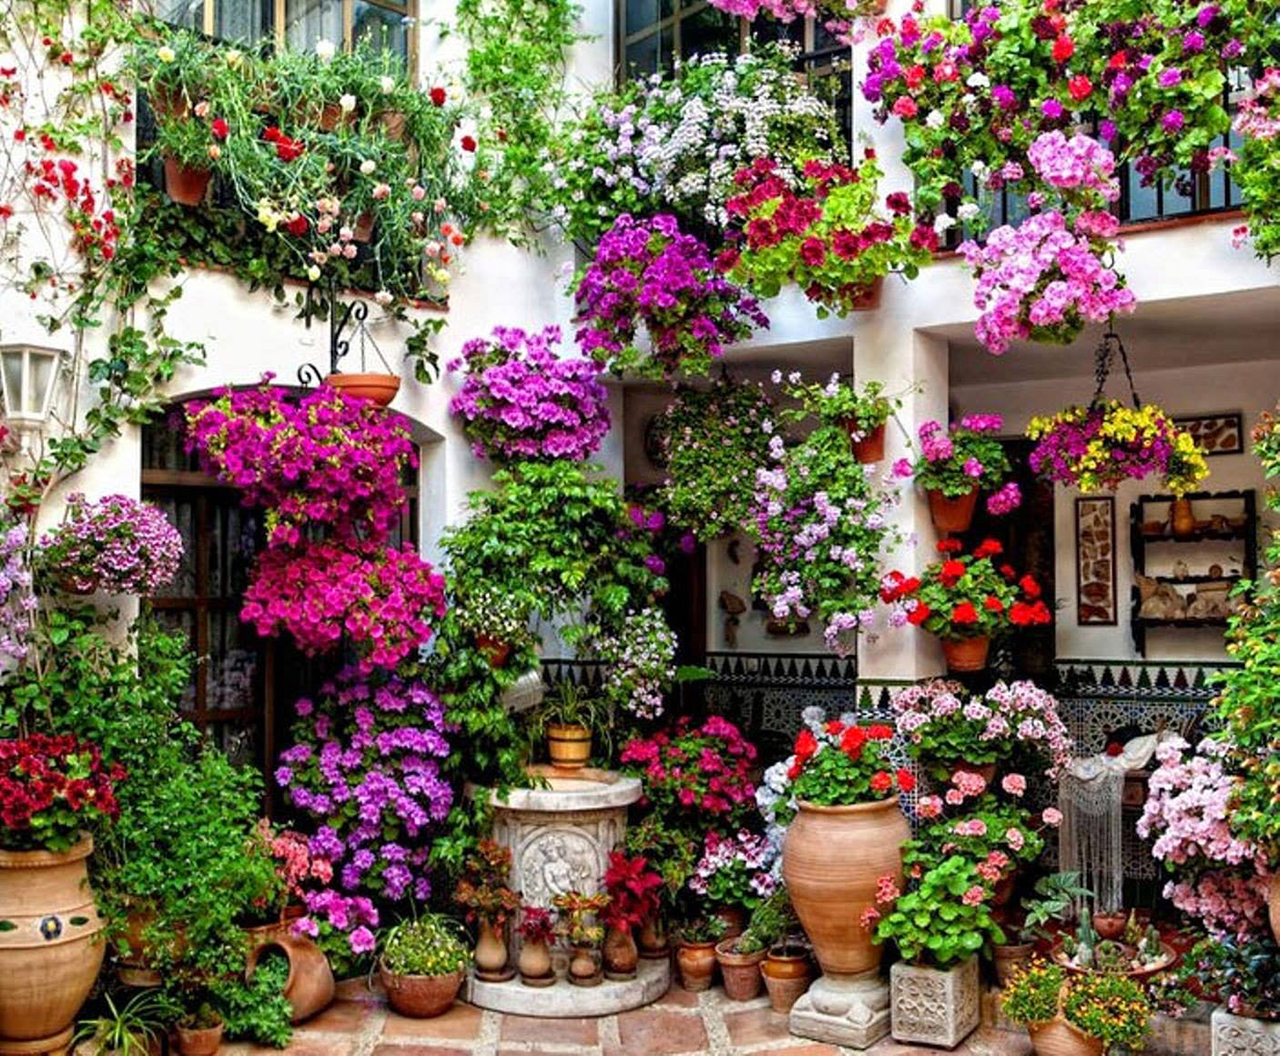 19-a-two-story-hanging-garden-of-flowers-vertical-garden-decor-homebnc